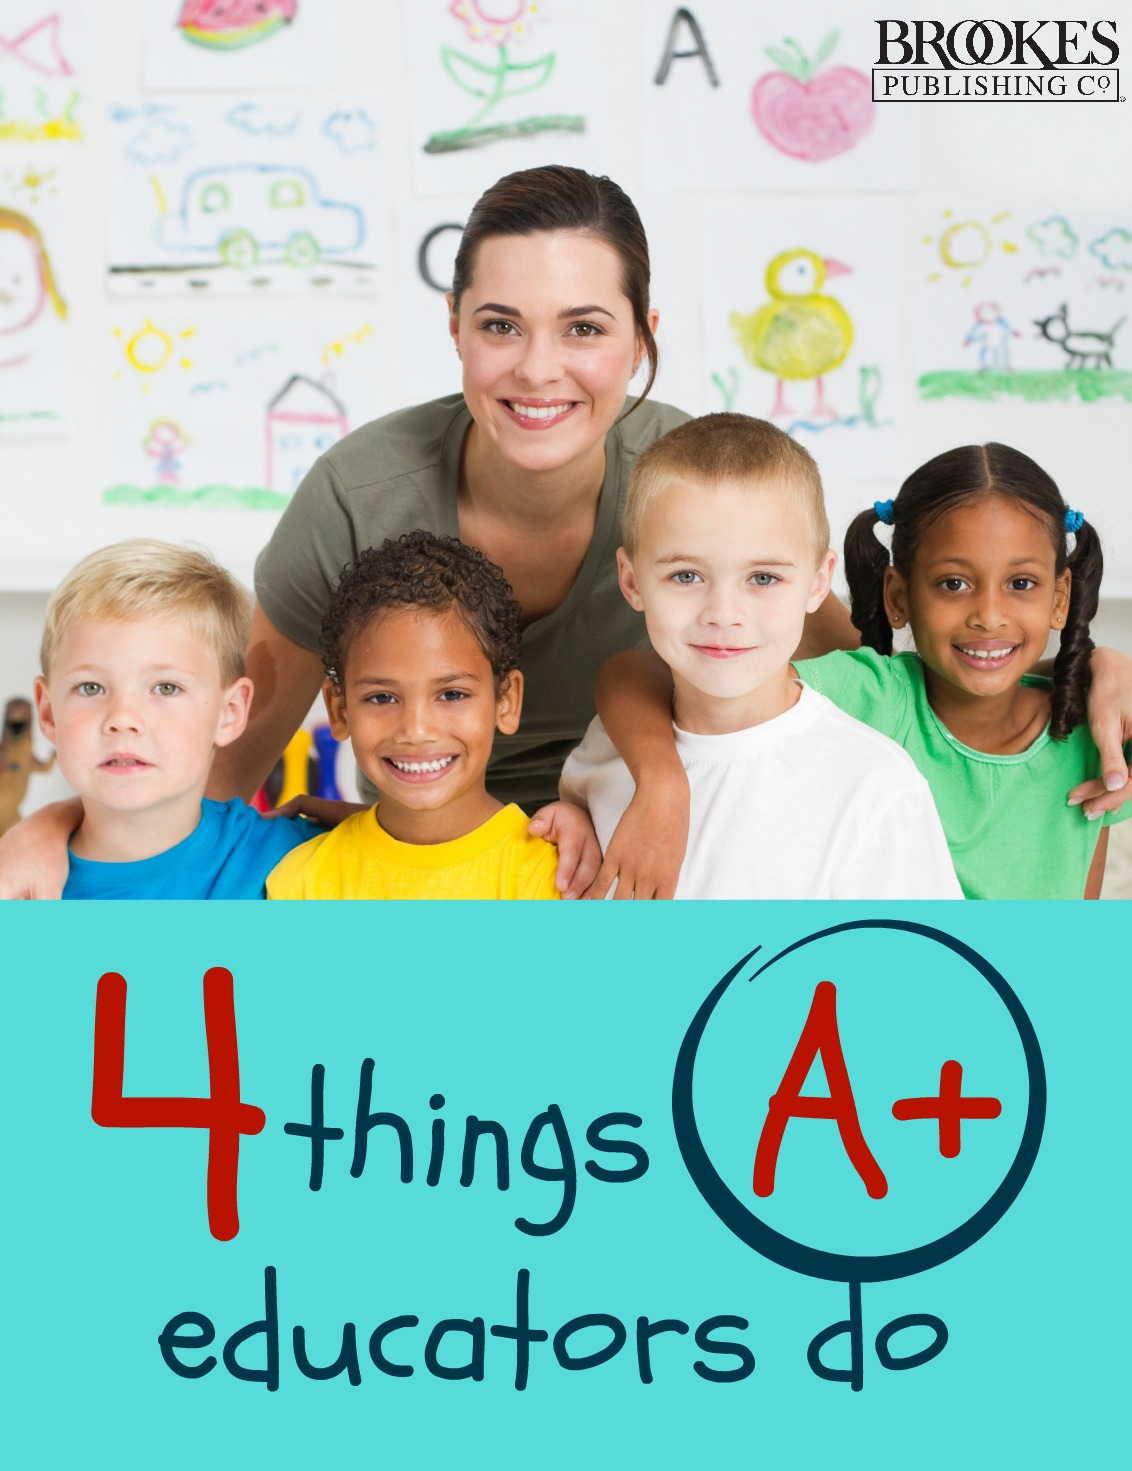 4 things effective educators do